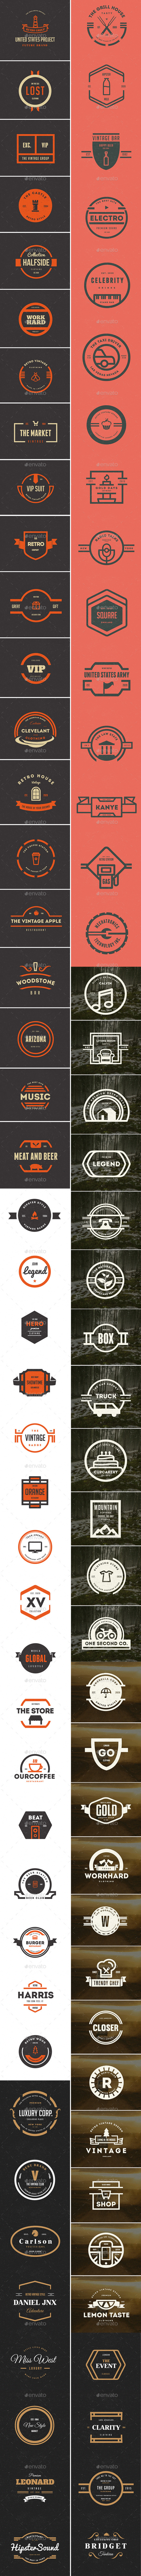 87 Vintage Labels & Badges Logos Bundle - Badges & Stickers Web Elements